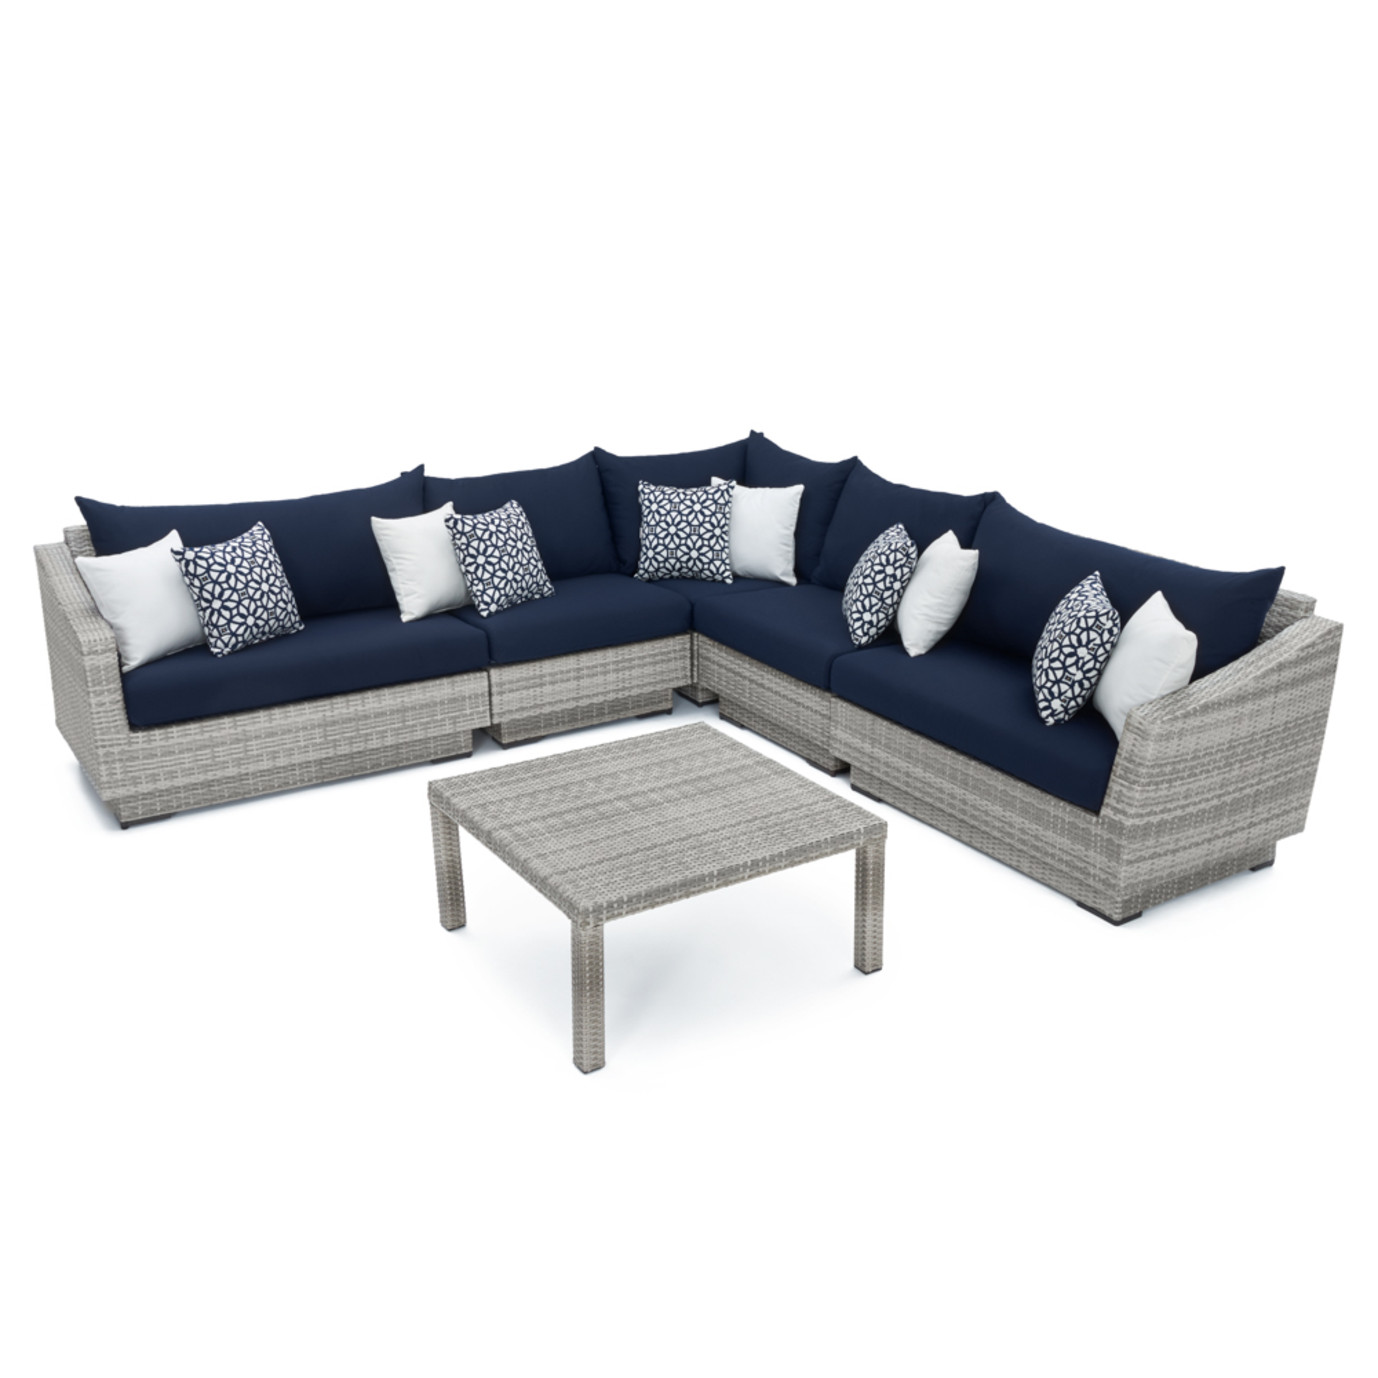 Cannes™ 6 Piece Sectional & Table - Navy Blue